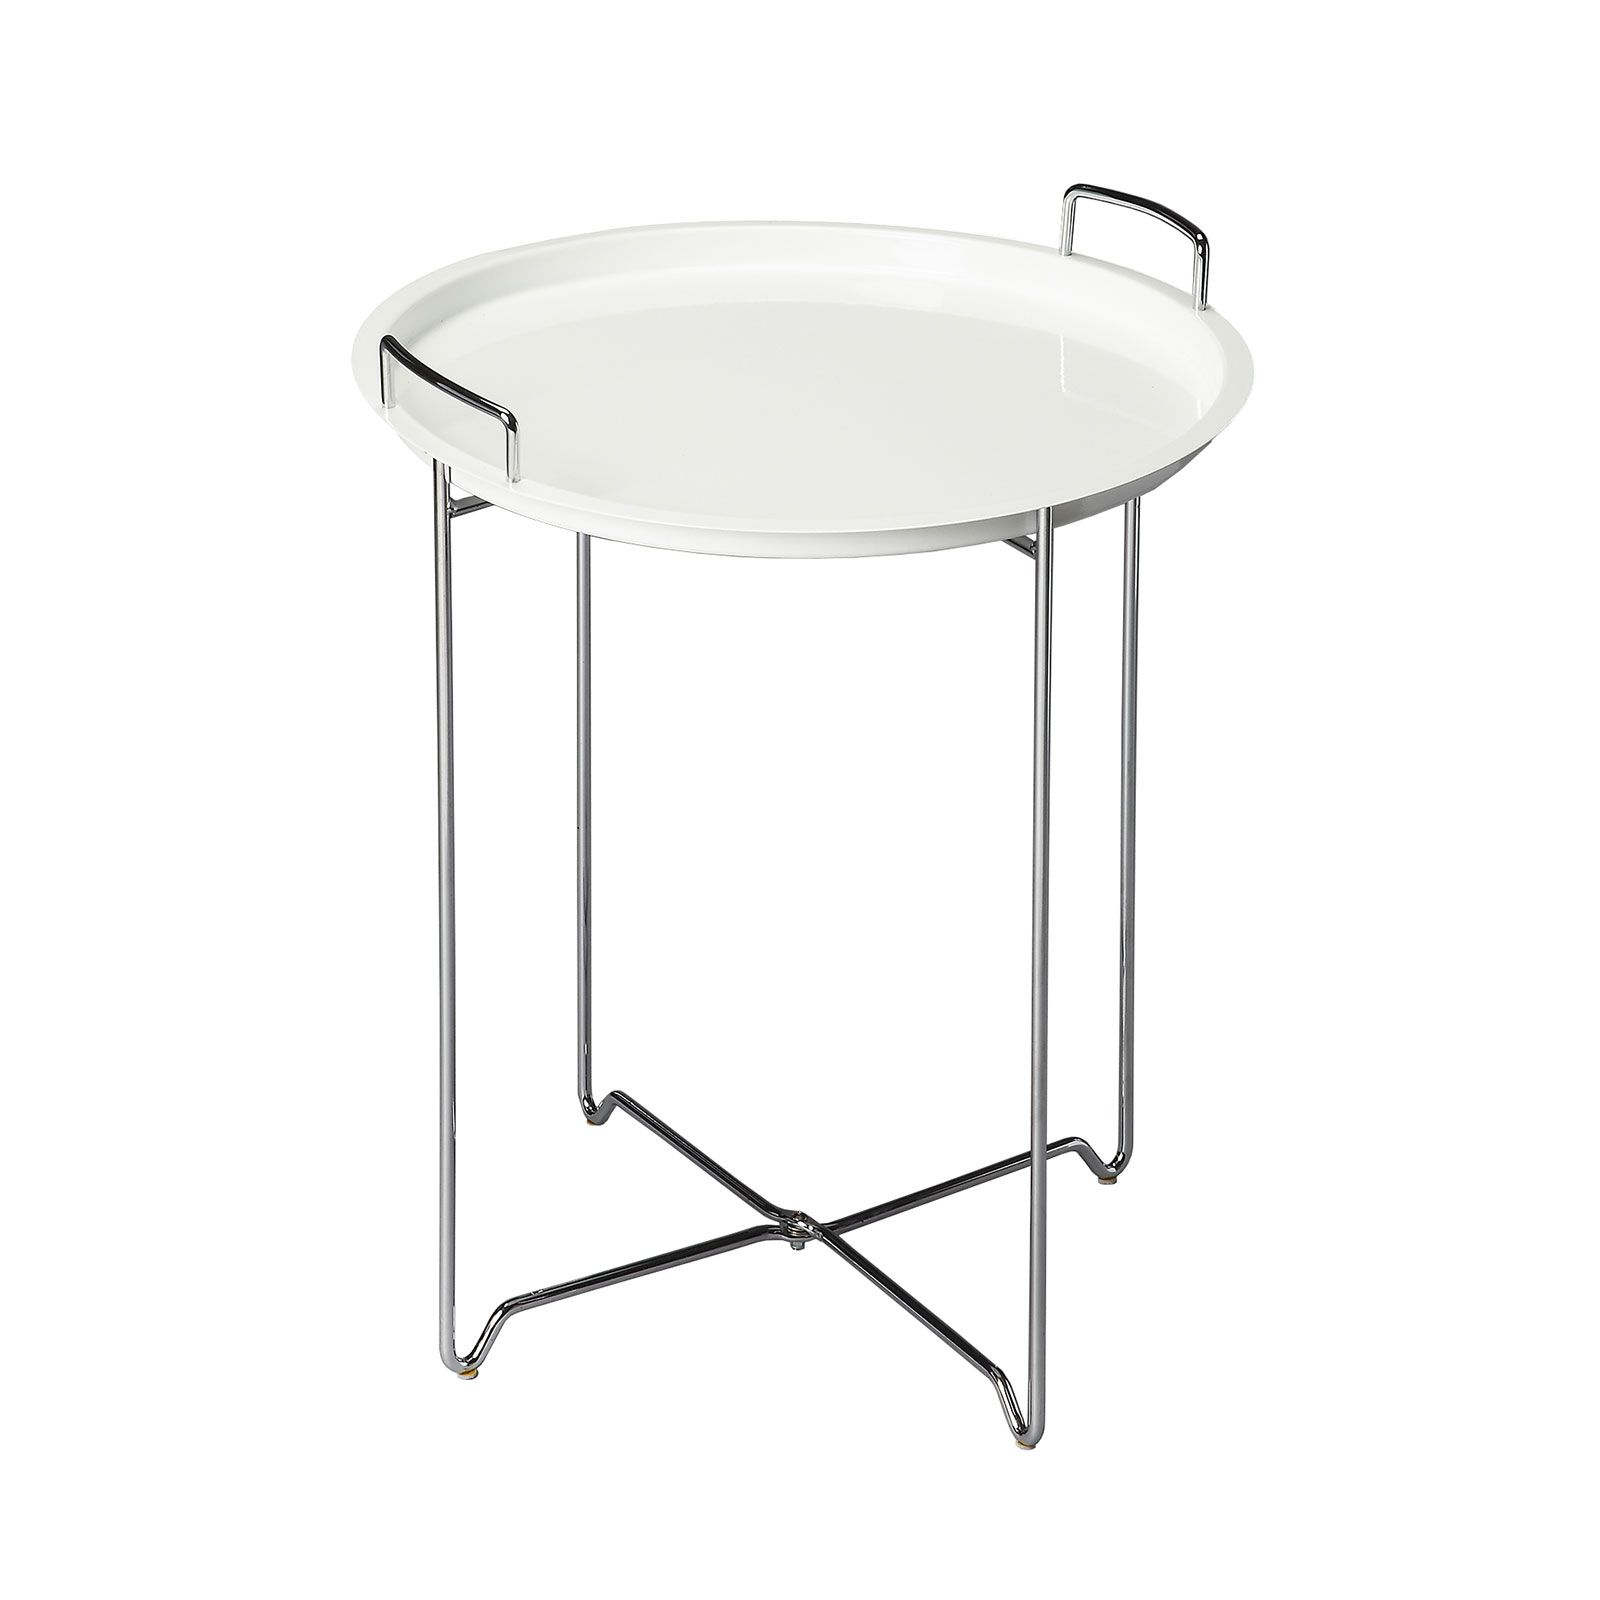 You can eat off it, store things on it, and move it around your home in a snap. And the white color makes it a summertime classic.  Find the Stand and Deliver Tray Table, as seen in the Summer in the City Collection at http://dotandbo.com/collections/summer-in-the-city?utm_source=pinterest&utm_medium=organic&db_sku=89830